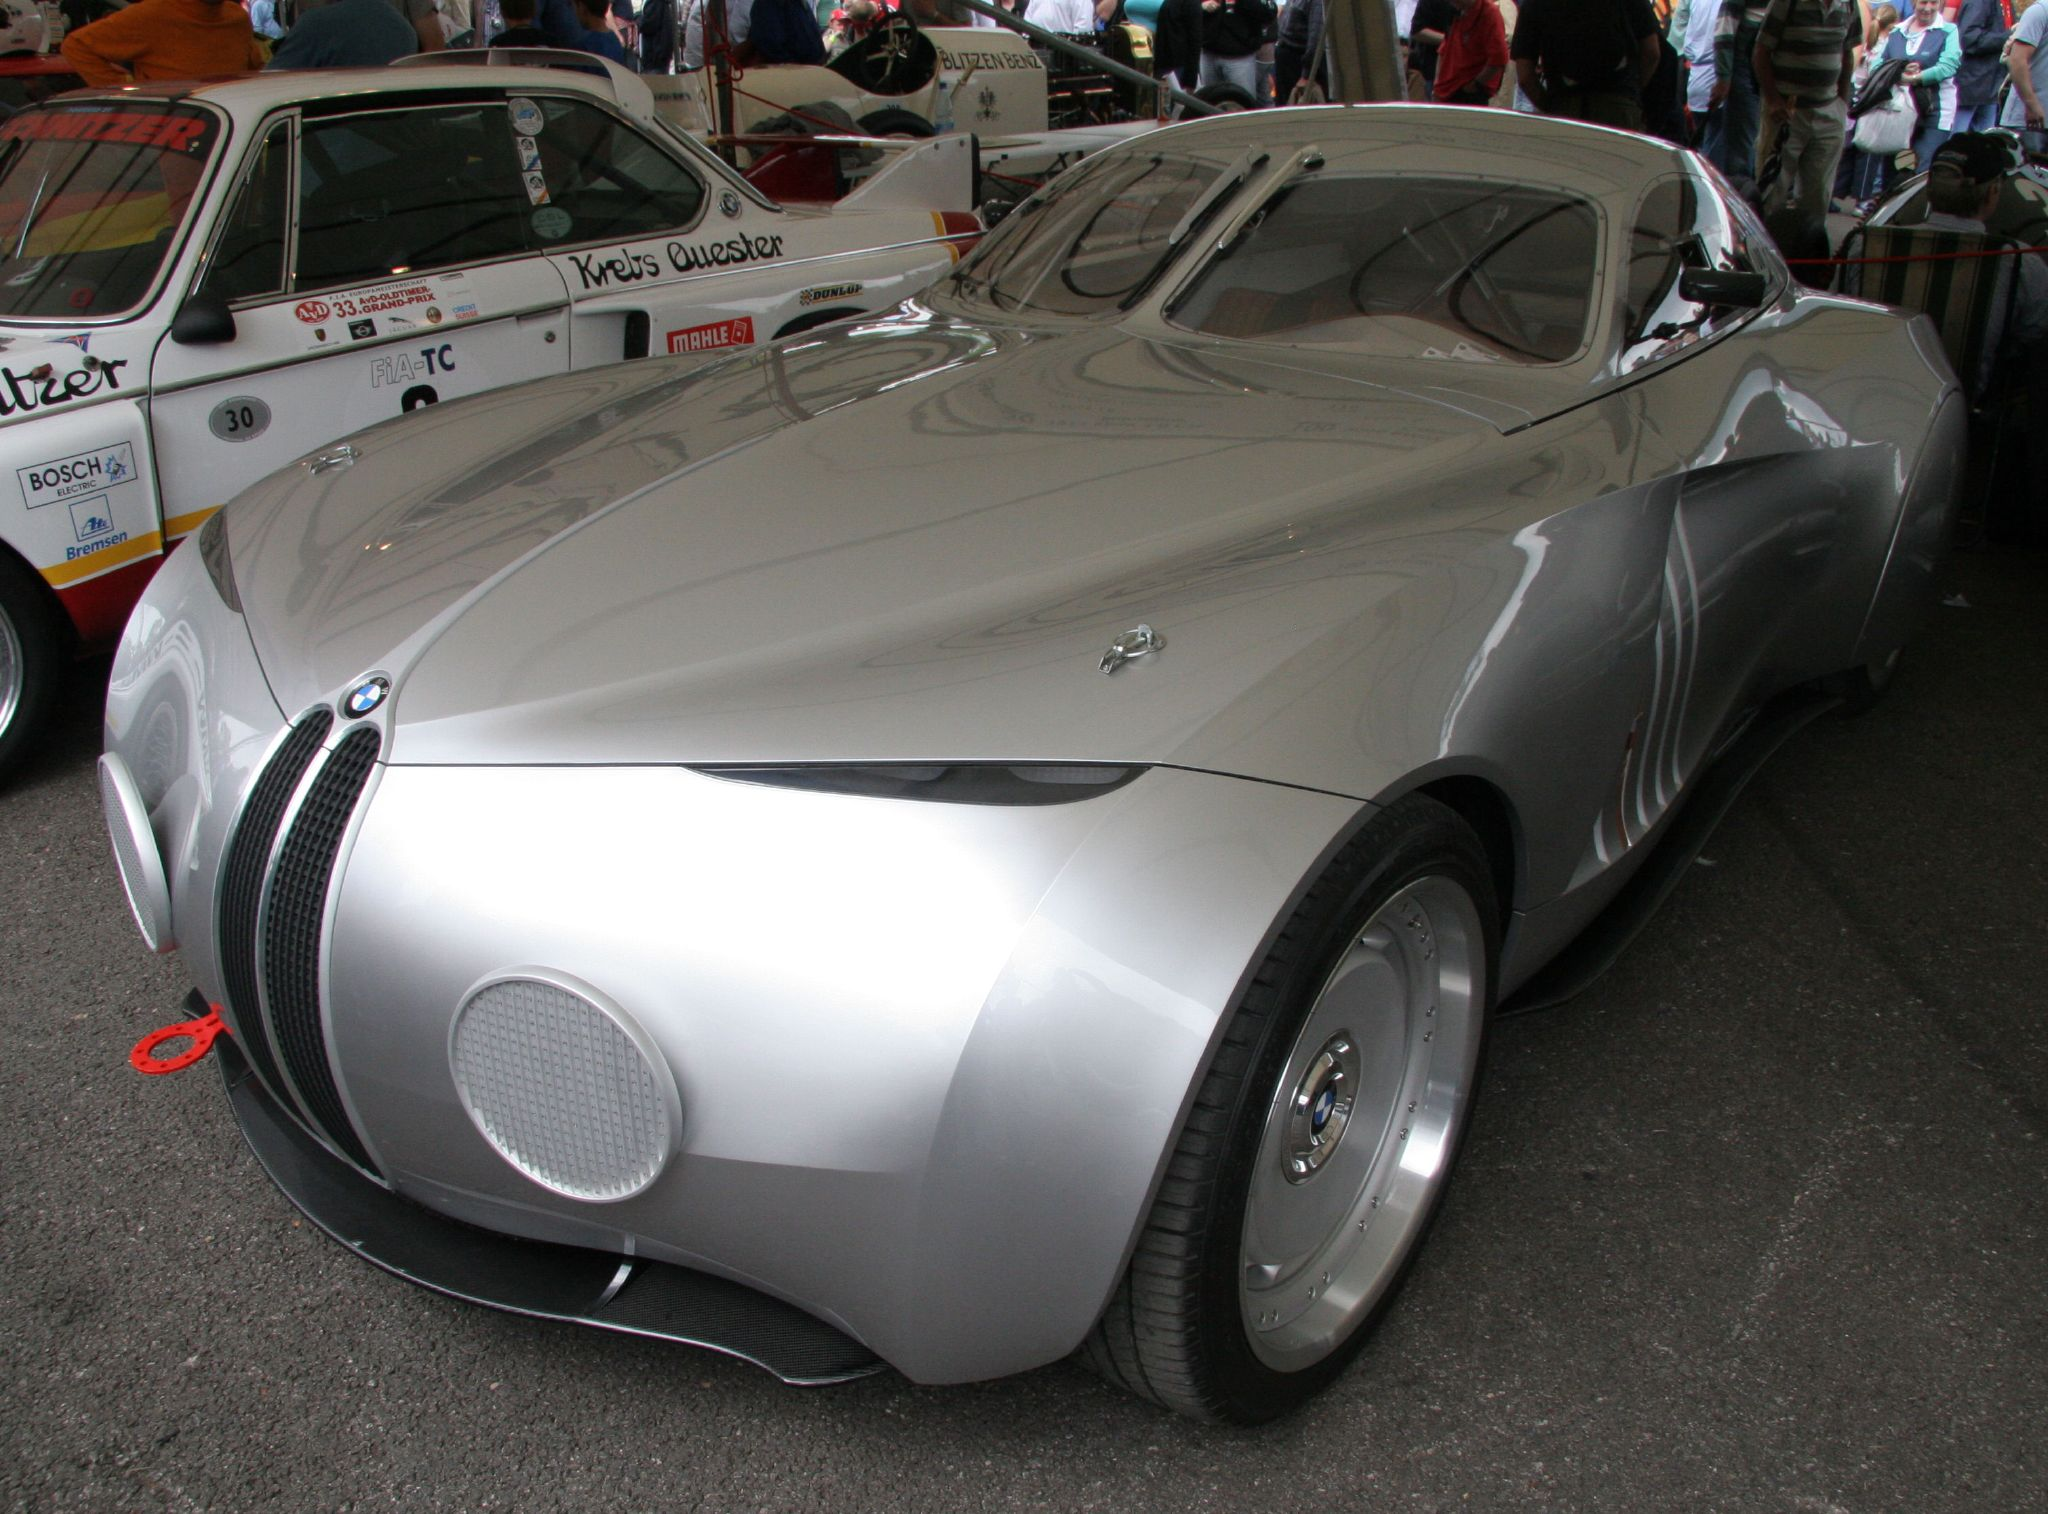 File:BMW Mille Miglia Concept 2006 - Flickr - exfordy.jpg ...